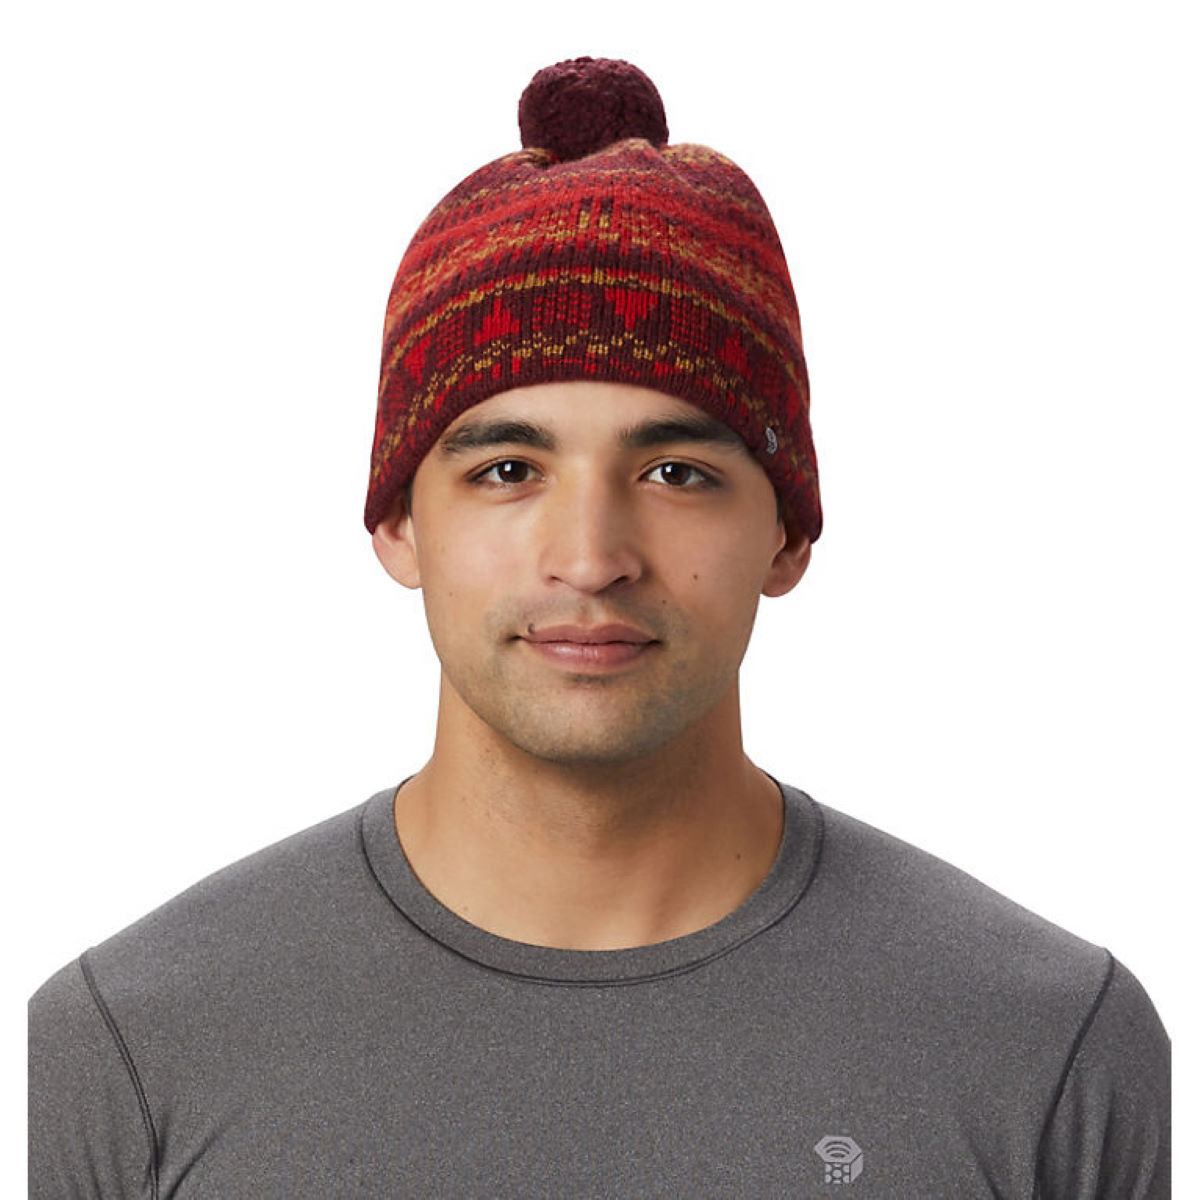 Mountain Hardwear Mountain Hardwear Belay Beanie   Beanies